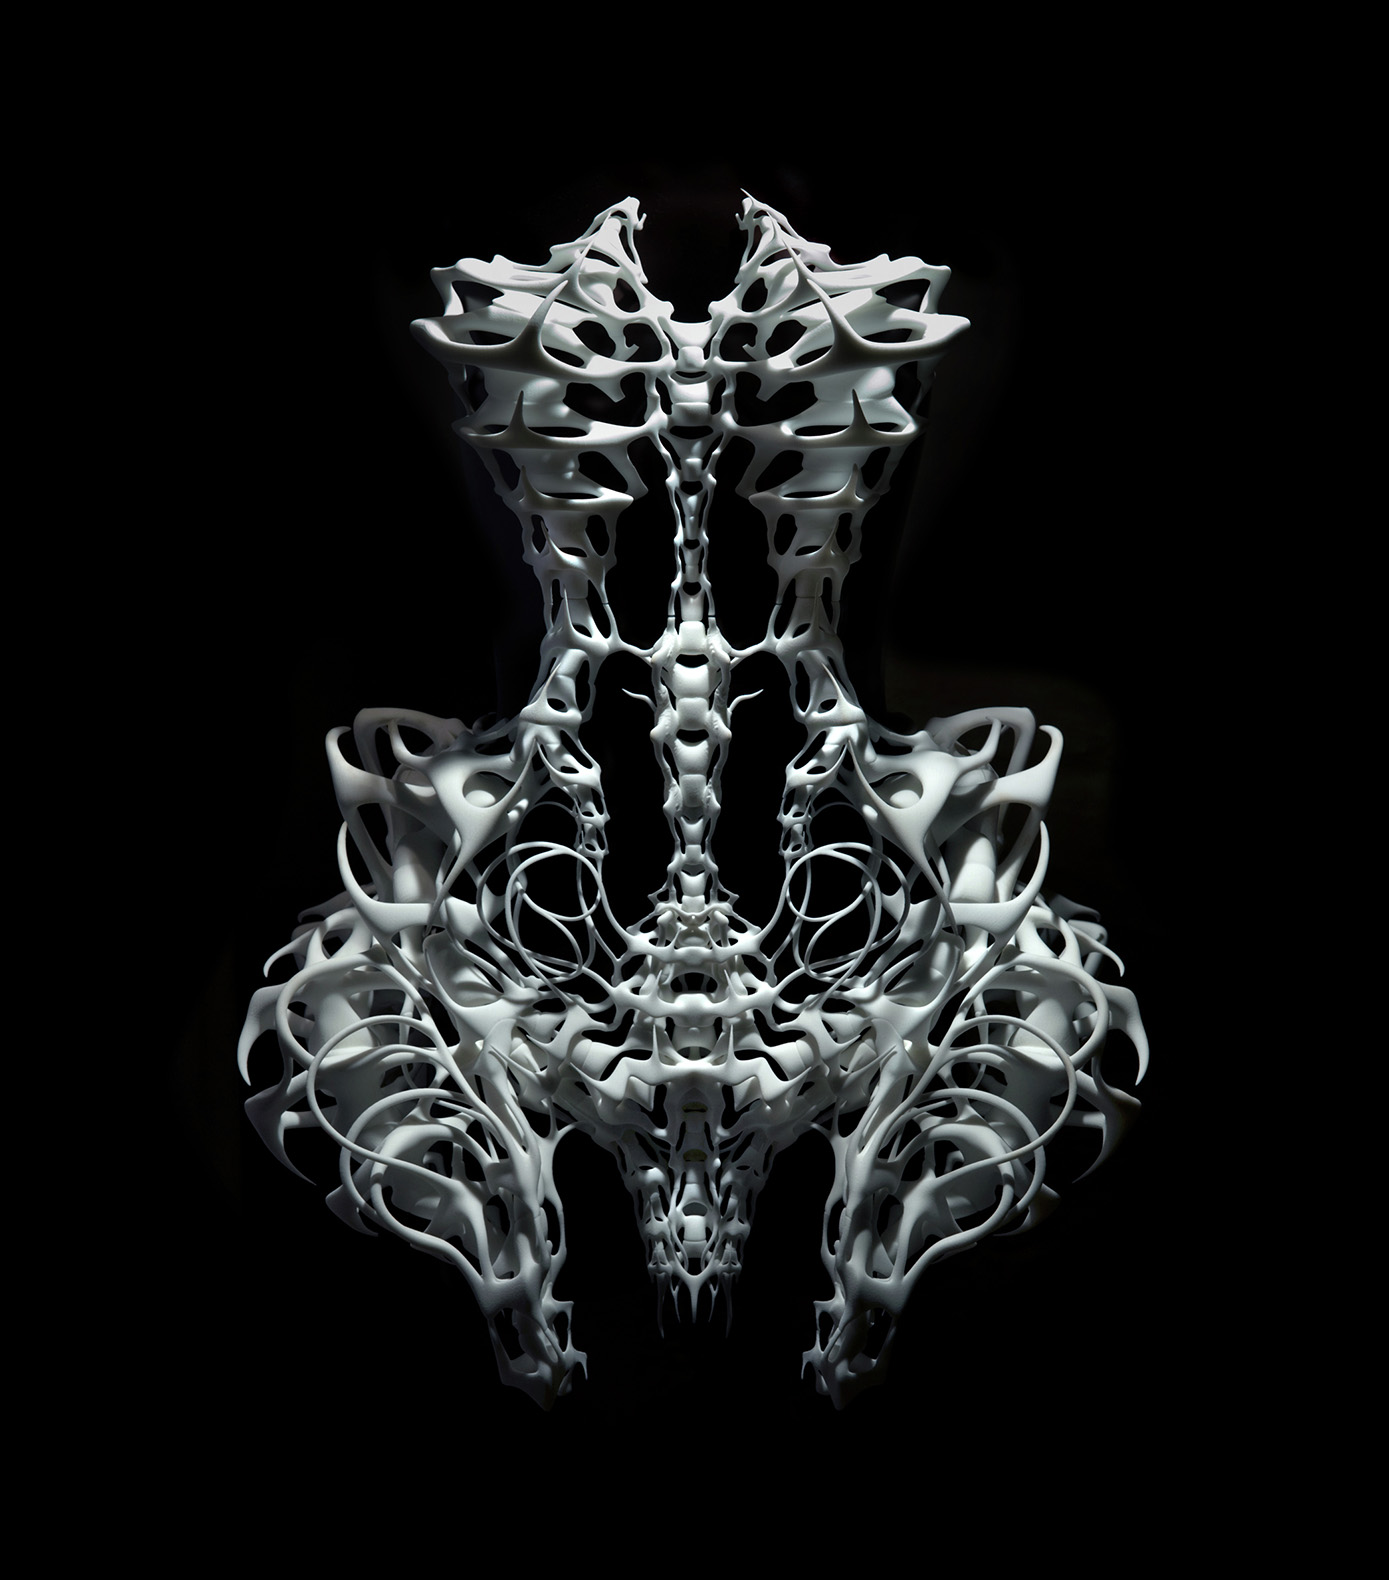 Iris van Herpen, Capriole, Ensemble, July 2011. Photo: Ingrid Baars. © Iris van Herpen.